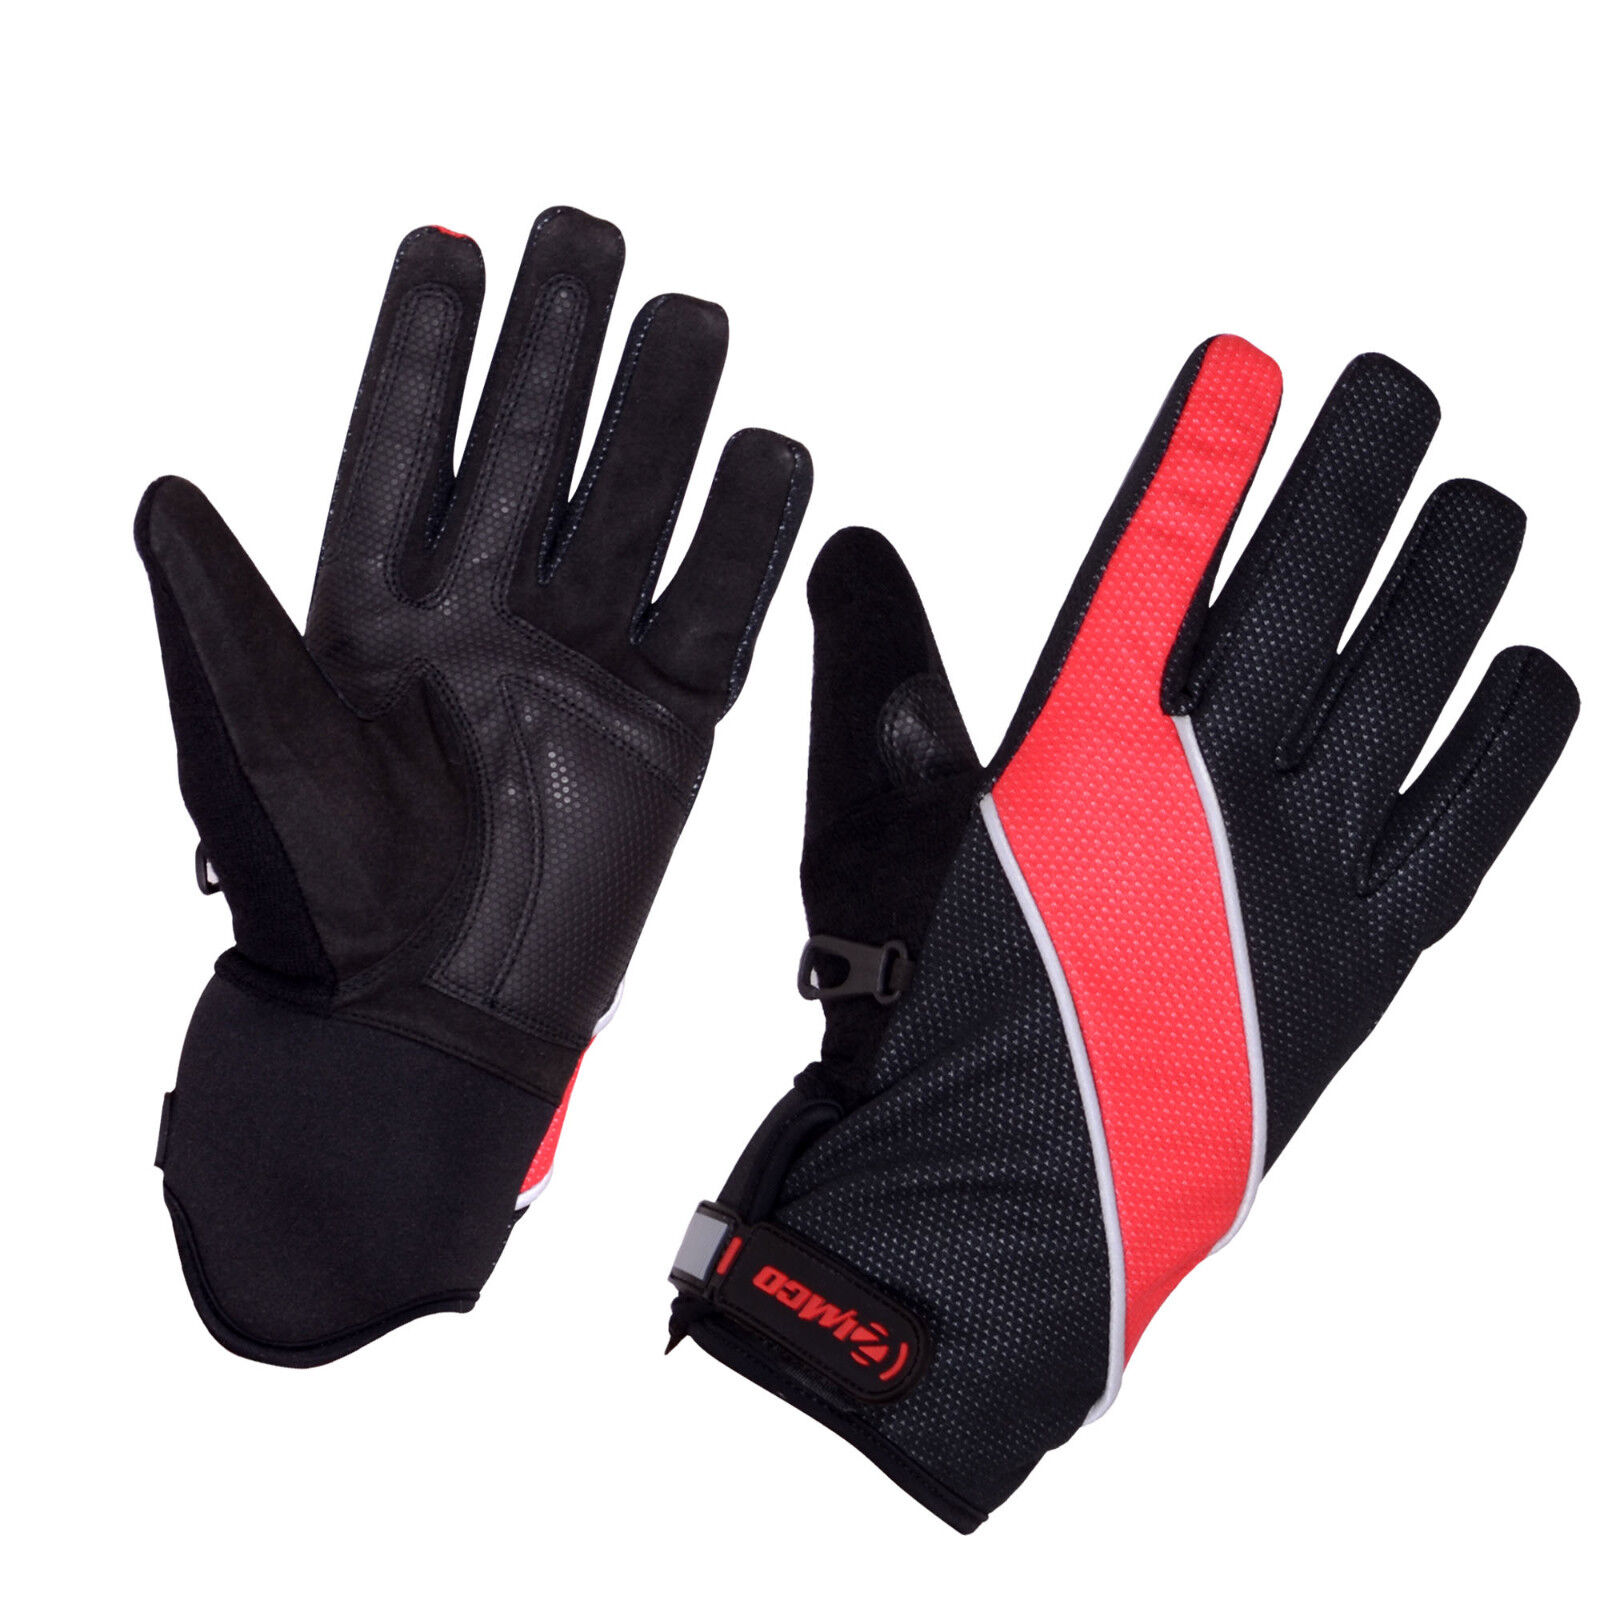 Zimco Windbreak Cycling Gloves Winter Cycle Windproof Gloves Mitts High Red